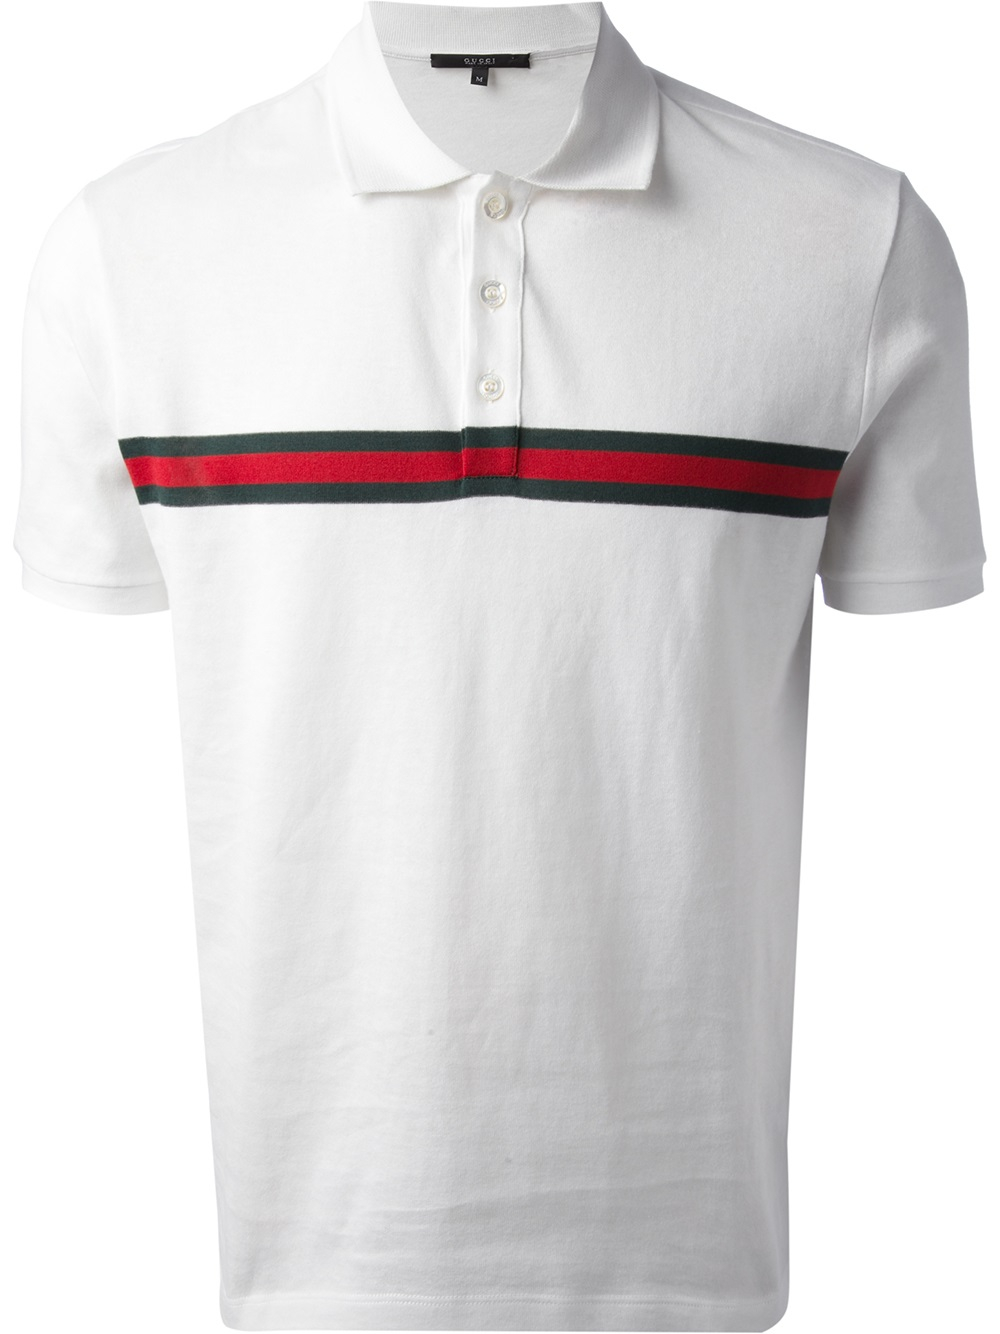 2623a1f00 Gucci Short Sleeve Polo Shirt in White for Men - Lyst